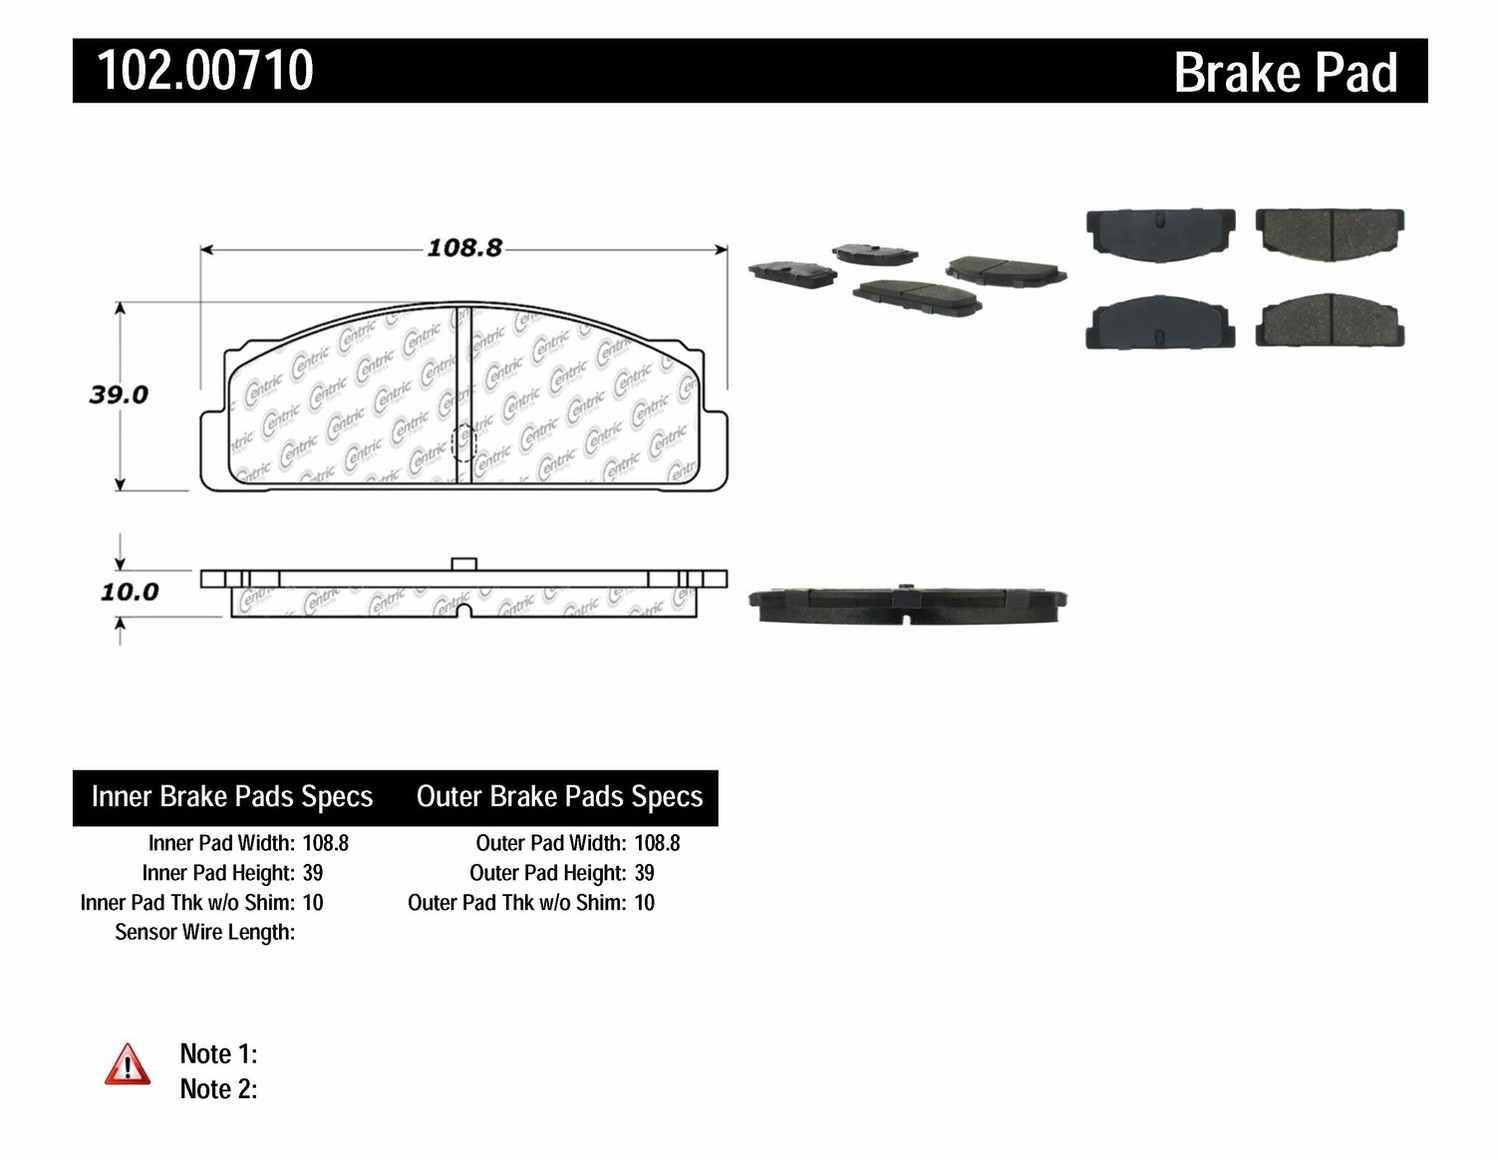 C-TEK BY CENTRIC - C-TEK Metallic Brake Pads-Preferred (Rear) - CTK 102.00710